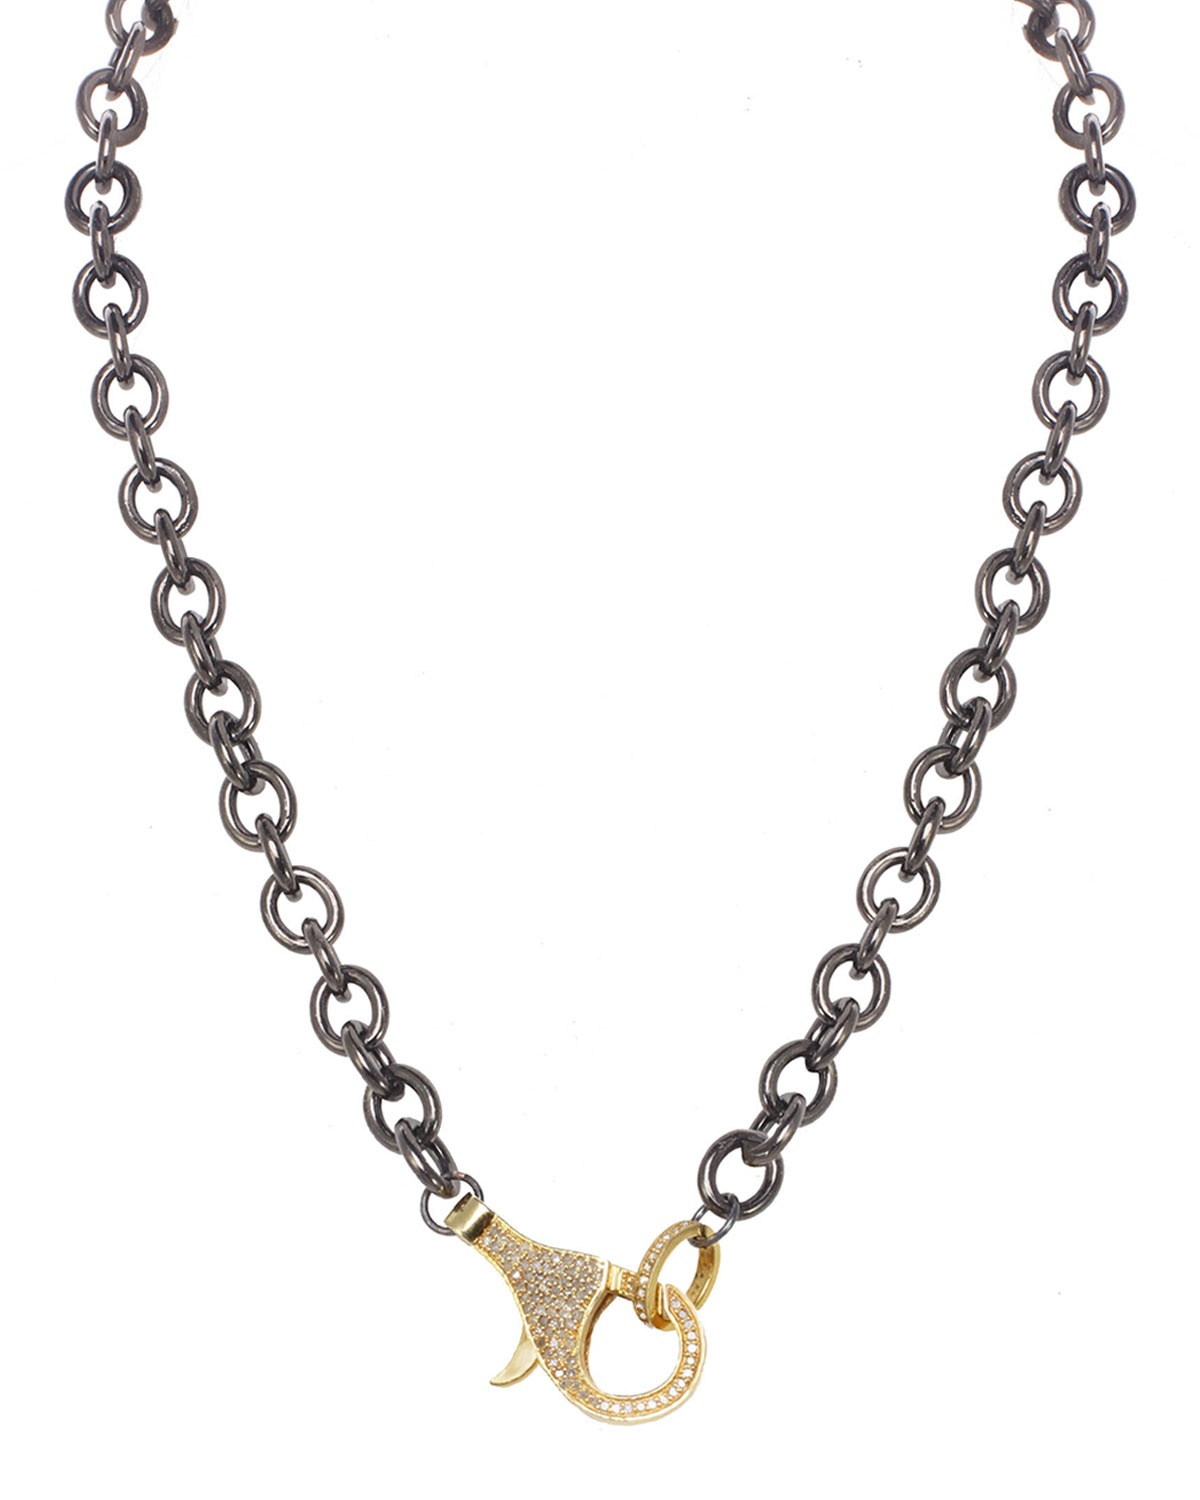 Rhodium Finish Sterling Silver Chain with Vermeil and Diamond Clasp